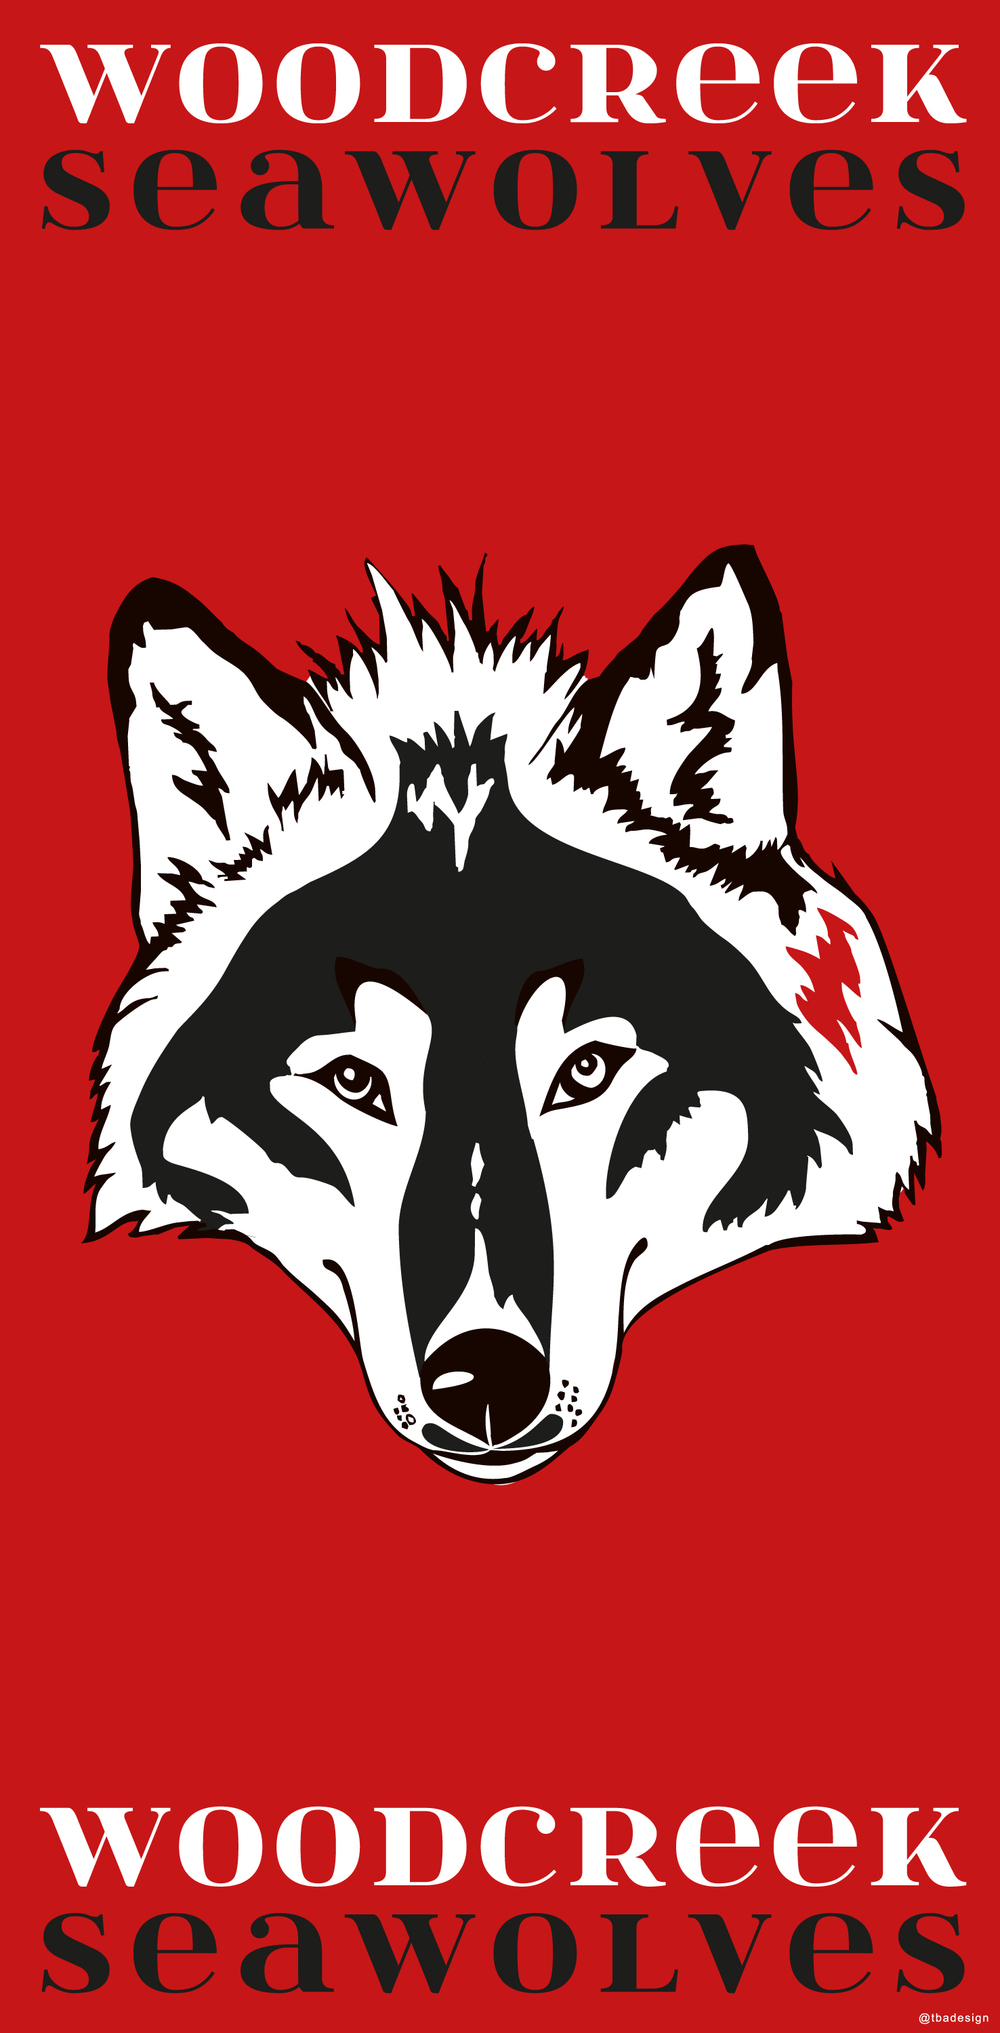 2016, tbad, Woodcreek Seawolves towel design.jpg